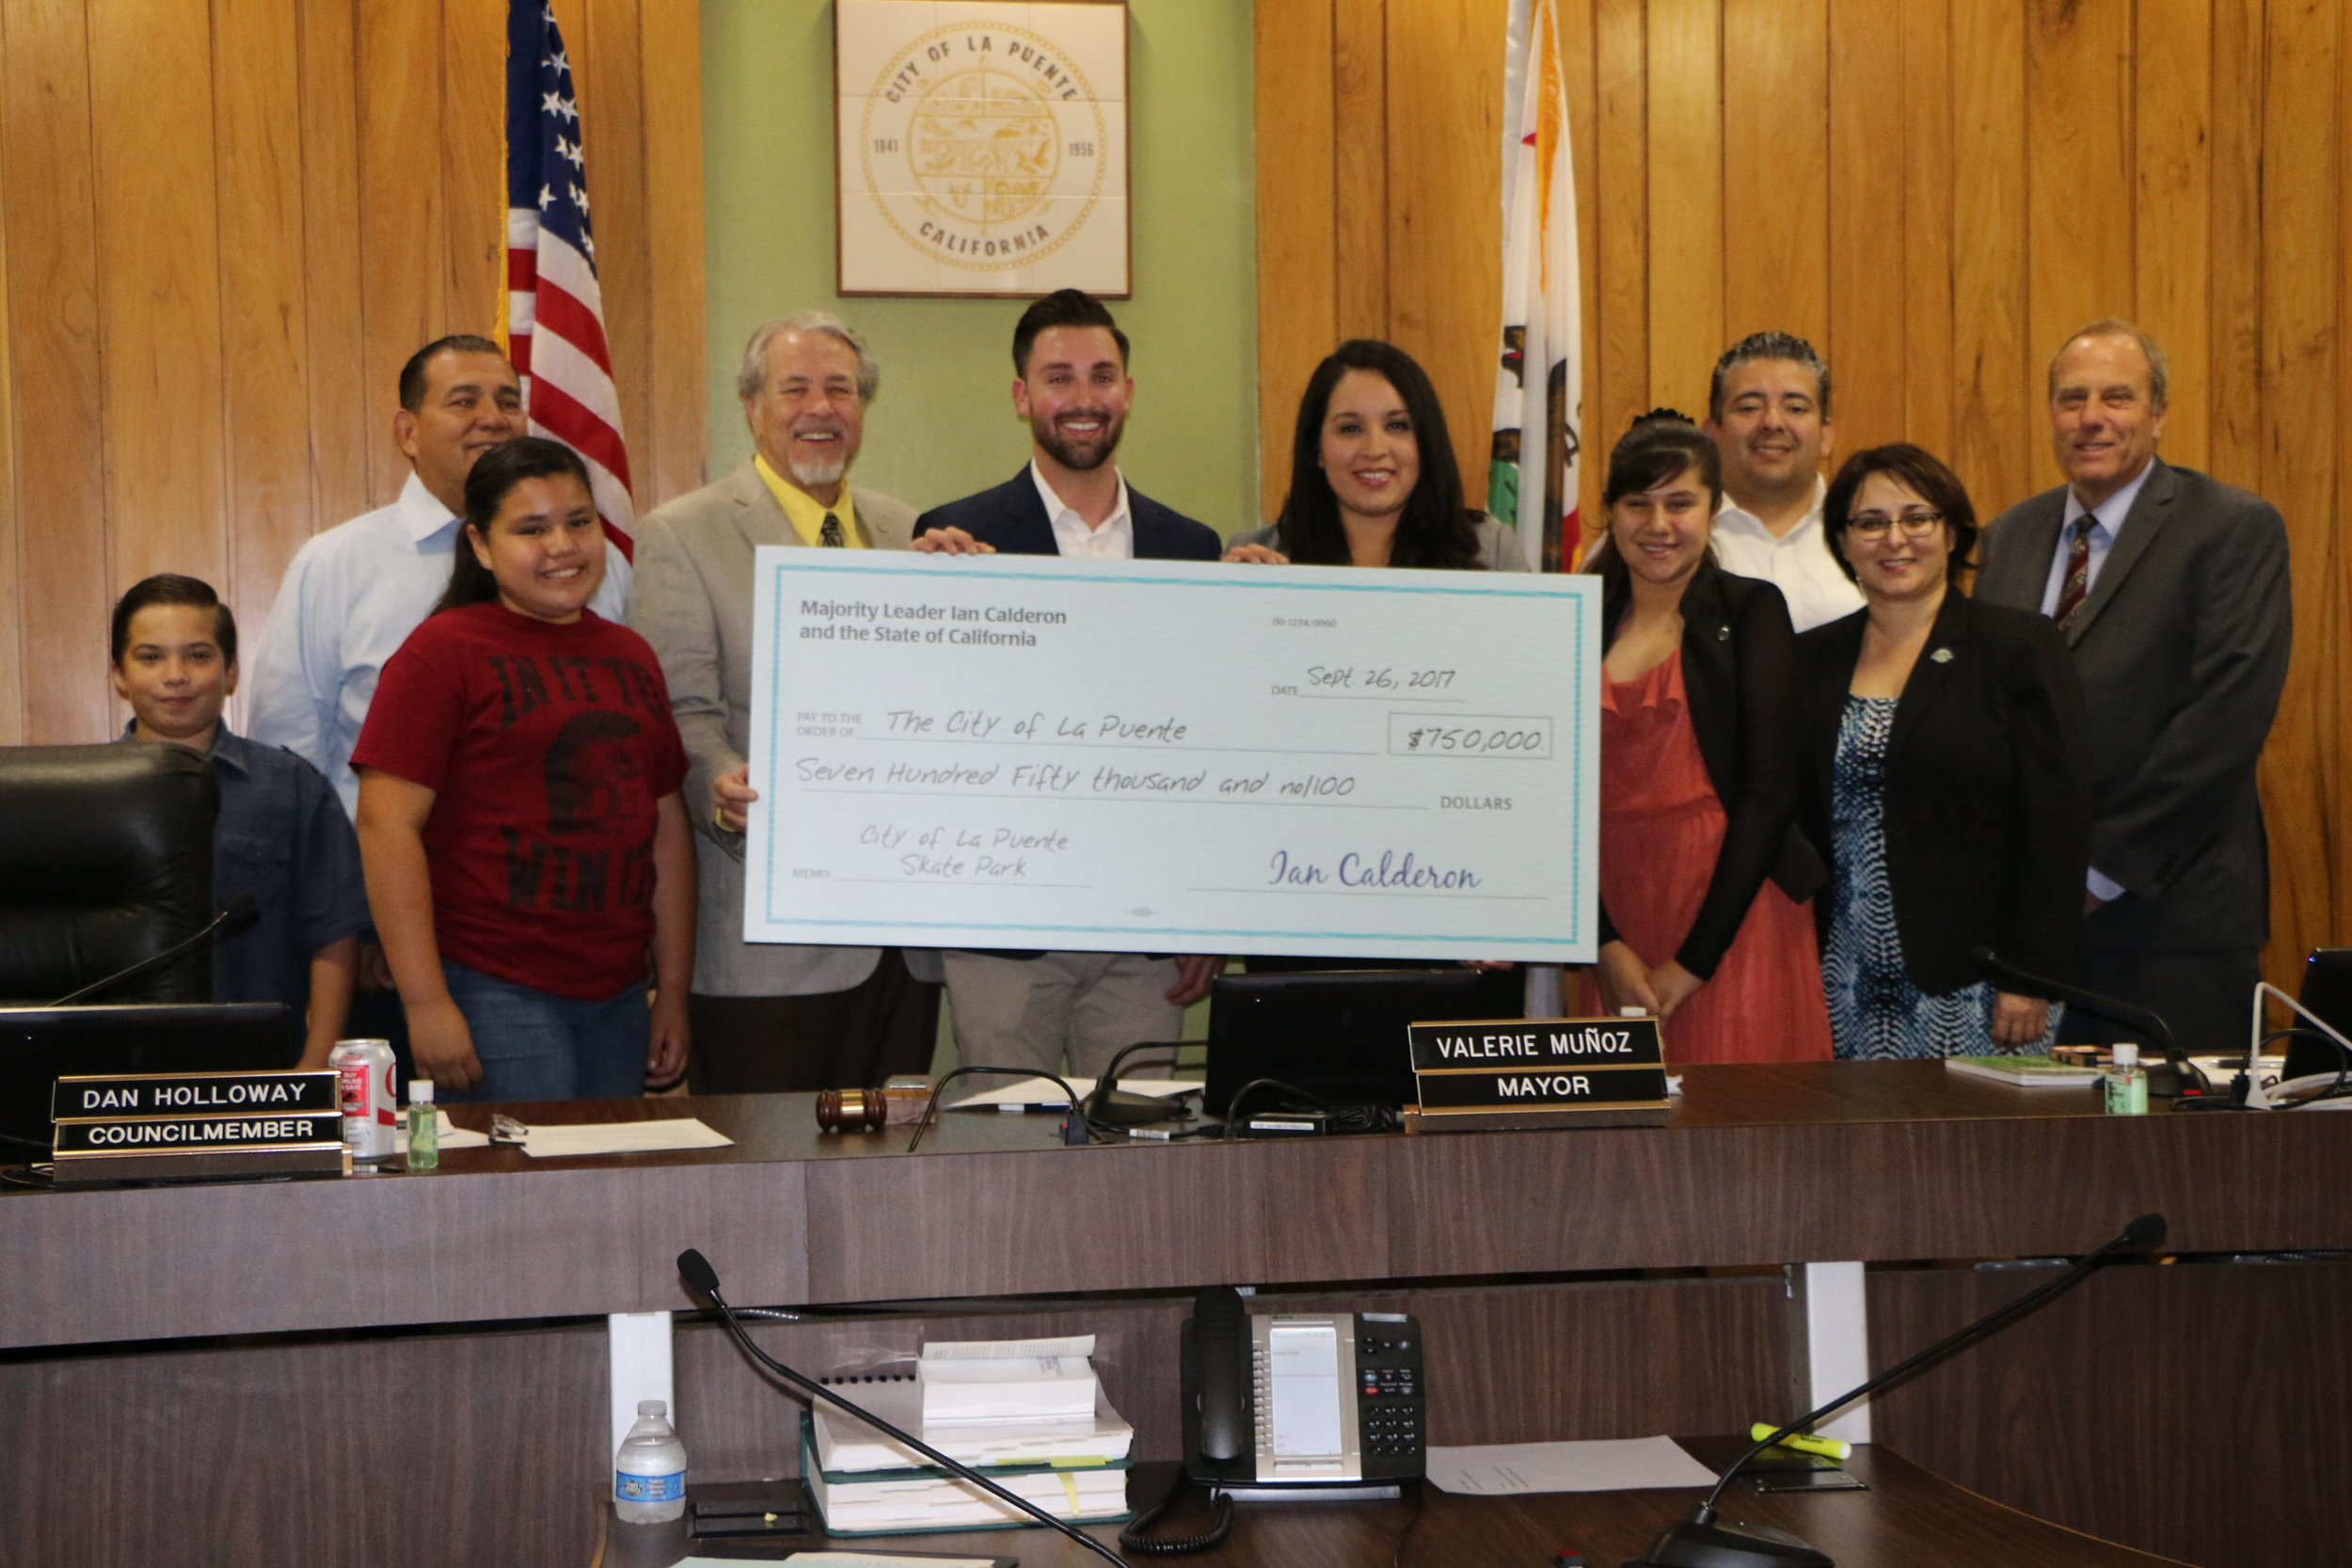 Presenting a grant check from the State of California to the City of La Puente for the new La Puente Skate Park.